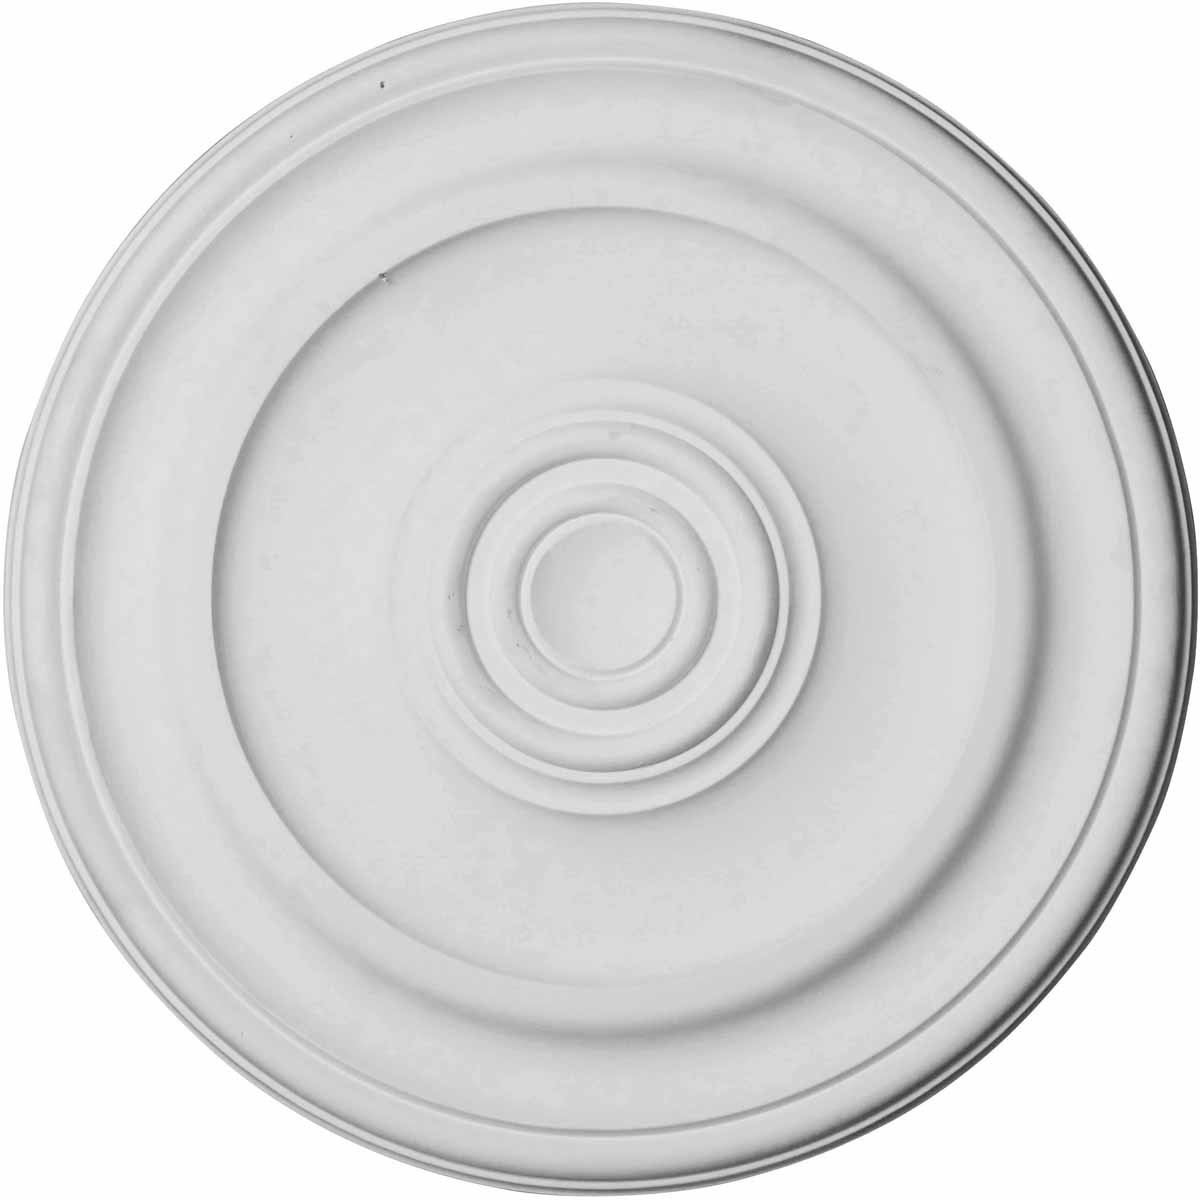 "EM-CM20KP - 19 3/4""OD x 1 1/2""P Kepler Traditional Ceiling Medallion (For Canopies up to 4 1/2"")"